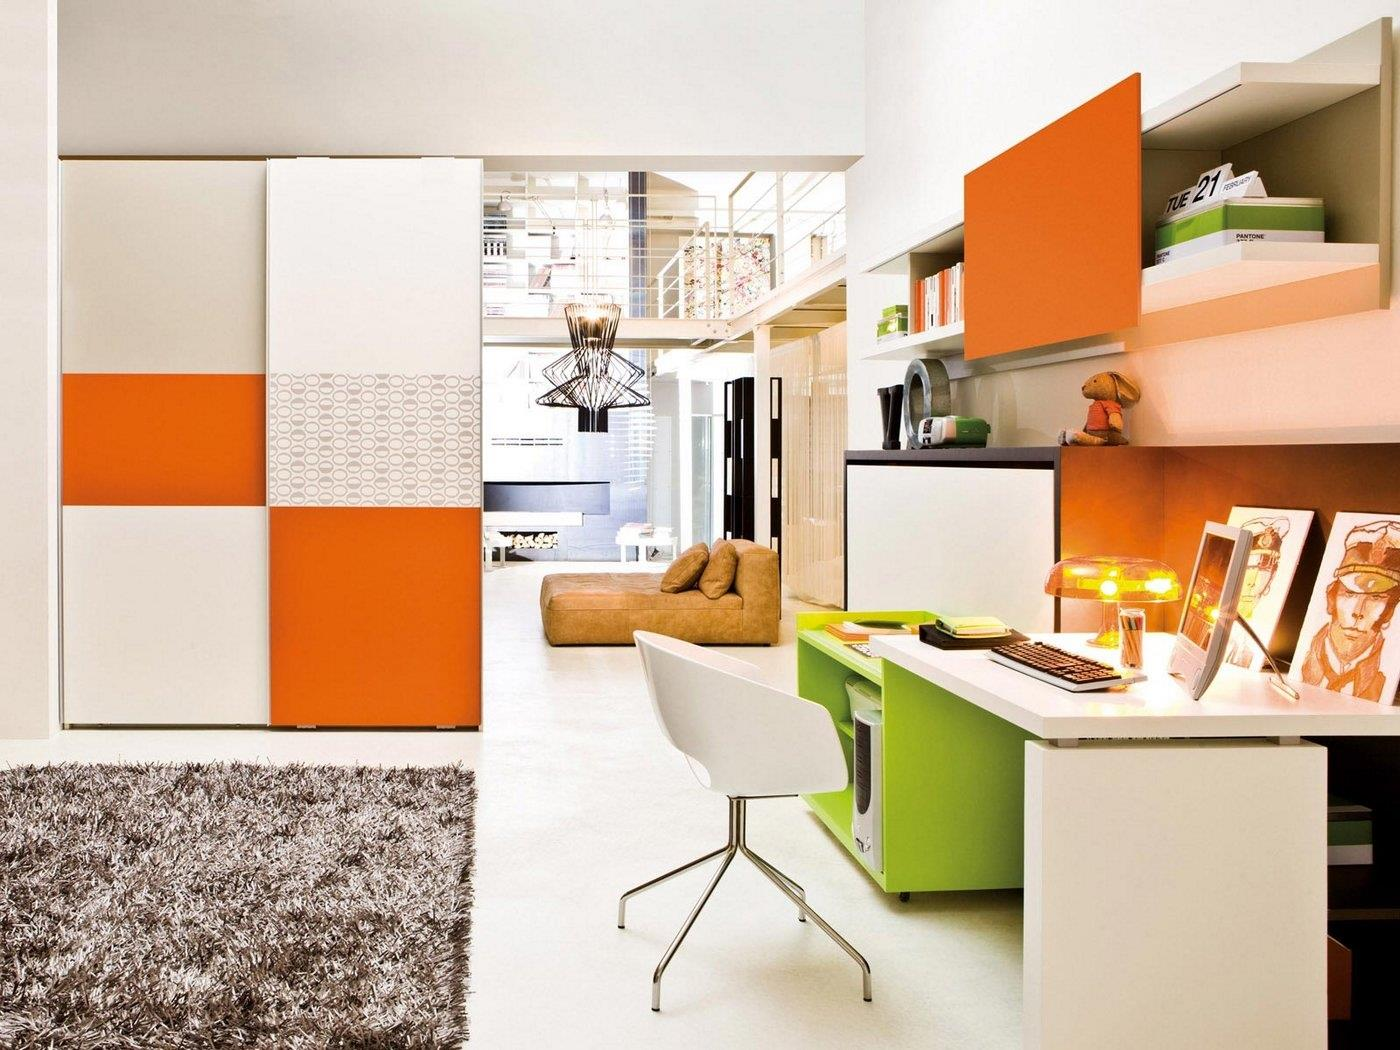 43-mobilier-inteligent-design-interior-smart